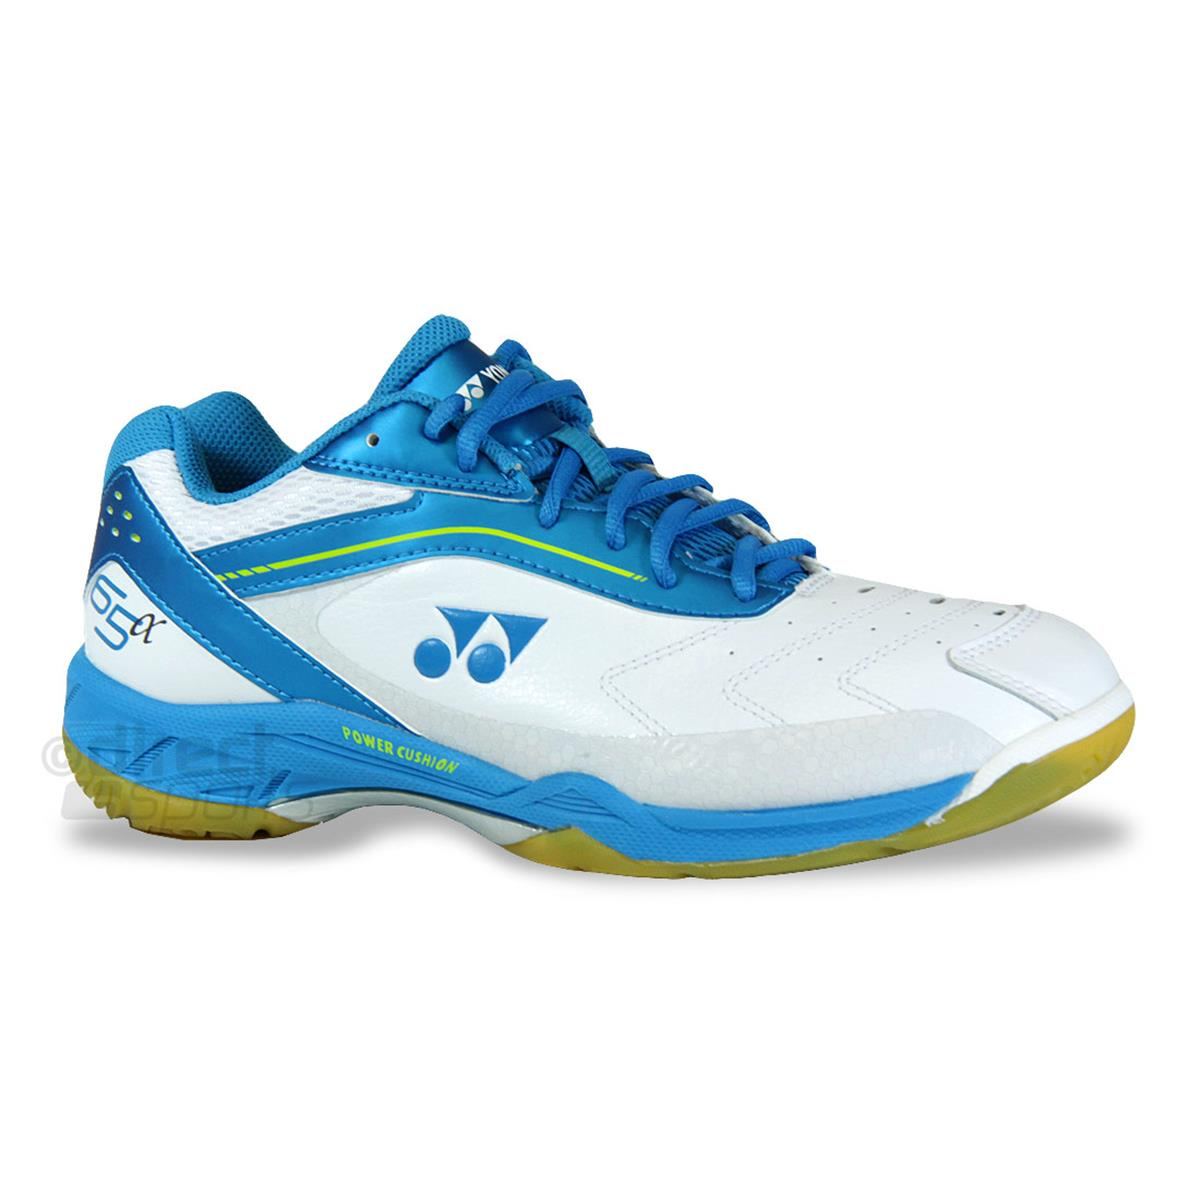 sports direct badminton shoes 28 images sportsdirect